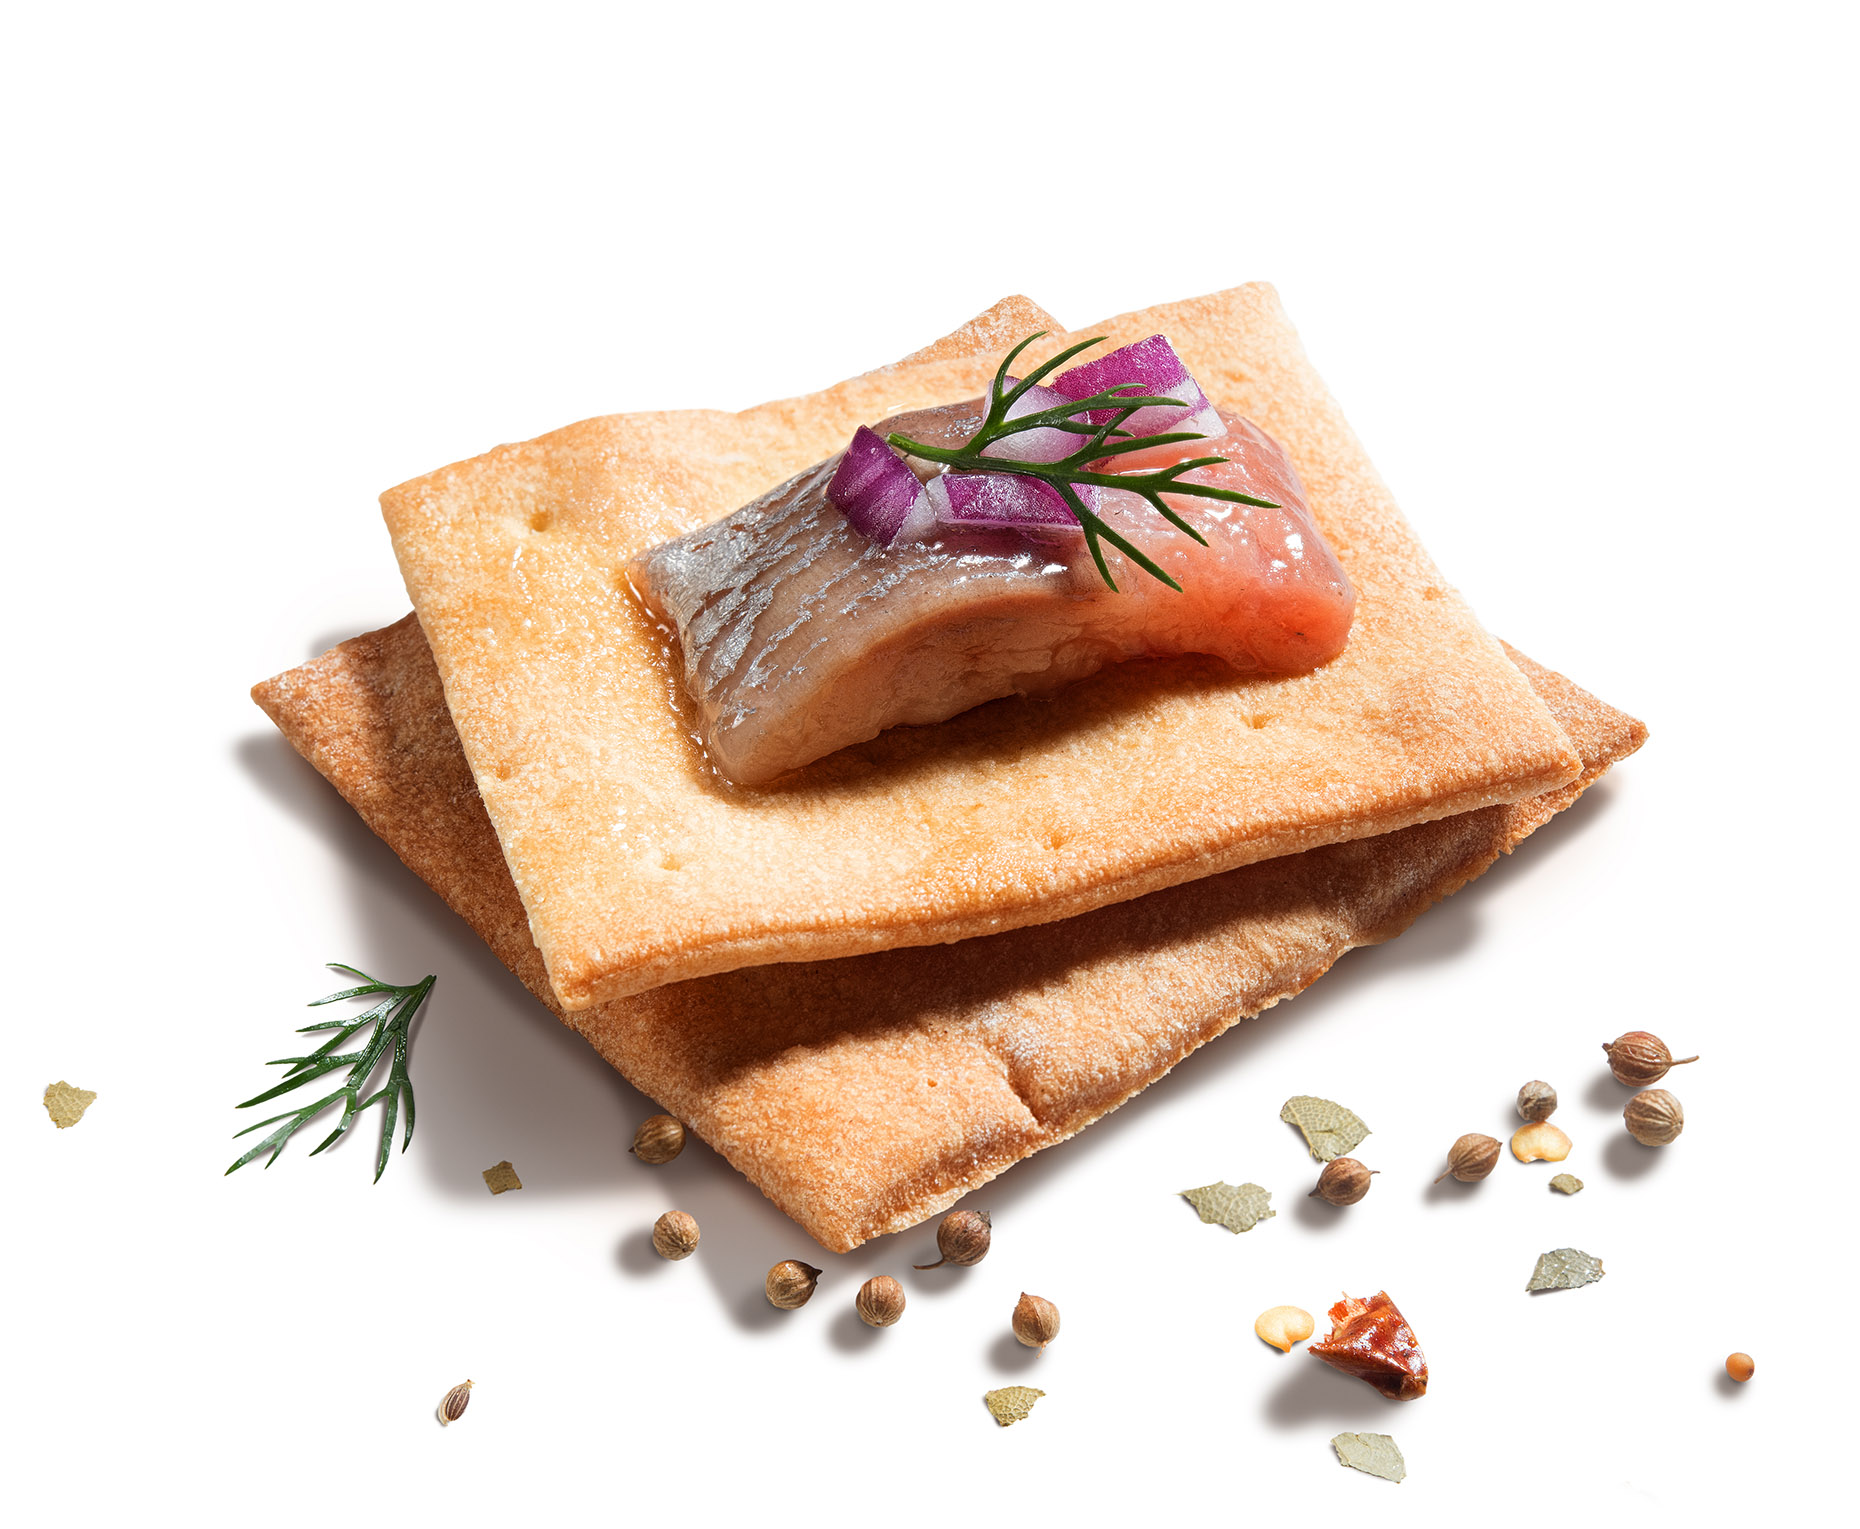 New-york-food-packaging-photo-studio-herring-cracker